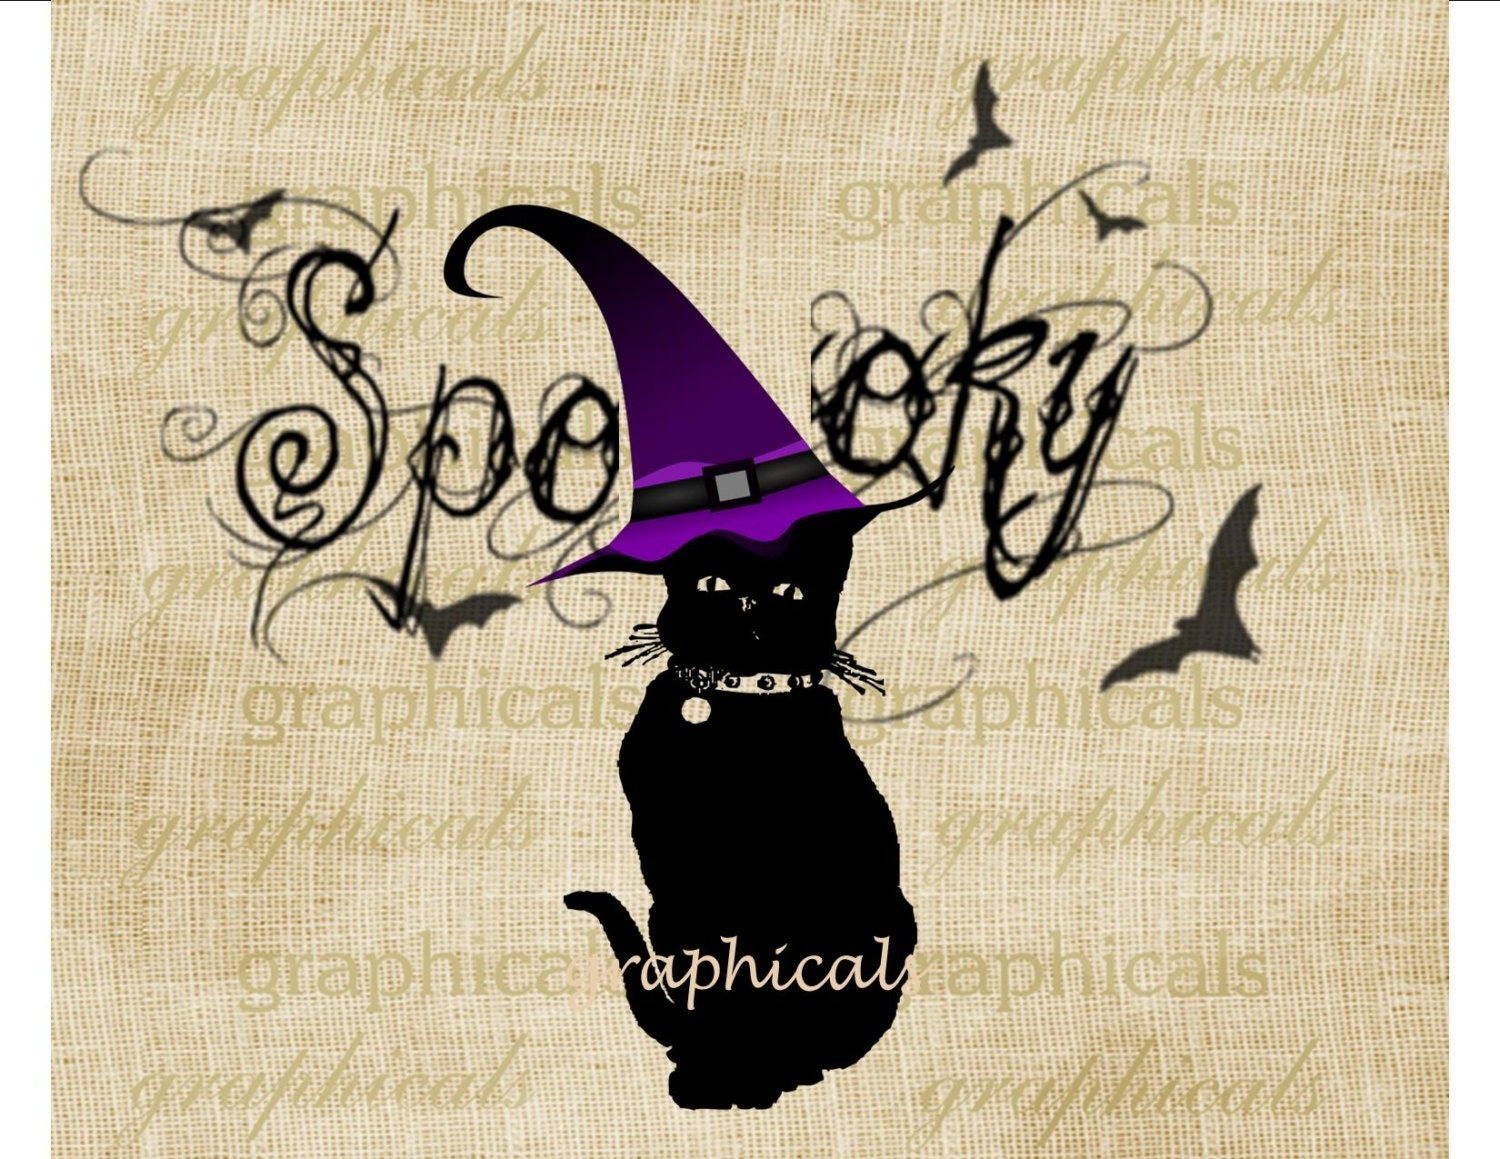 Halloween black cat Digital instant download image Spooky for iron on fabric transfer burlap decoupage tags pillows totebags Item No 2051 - graphicals